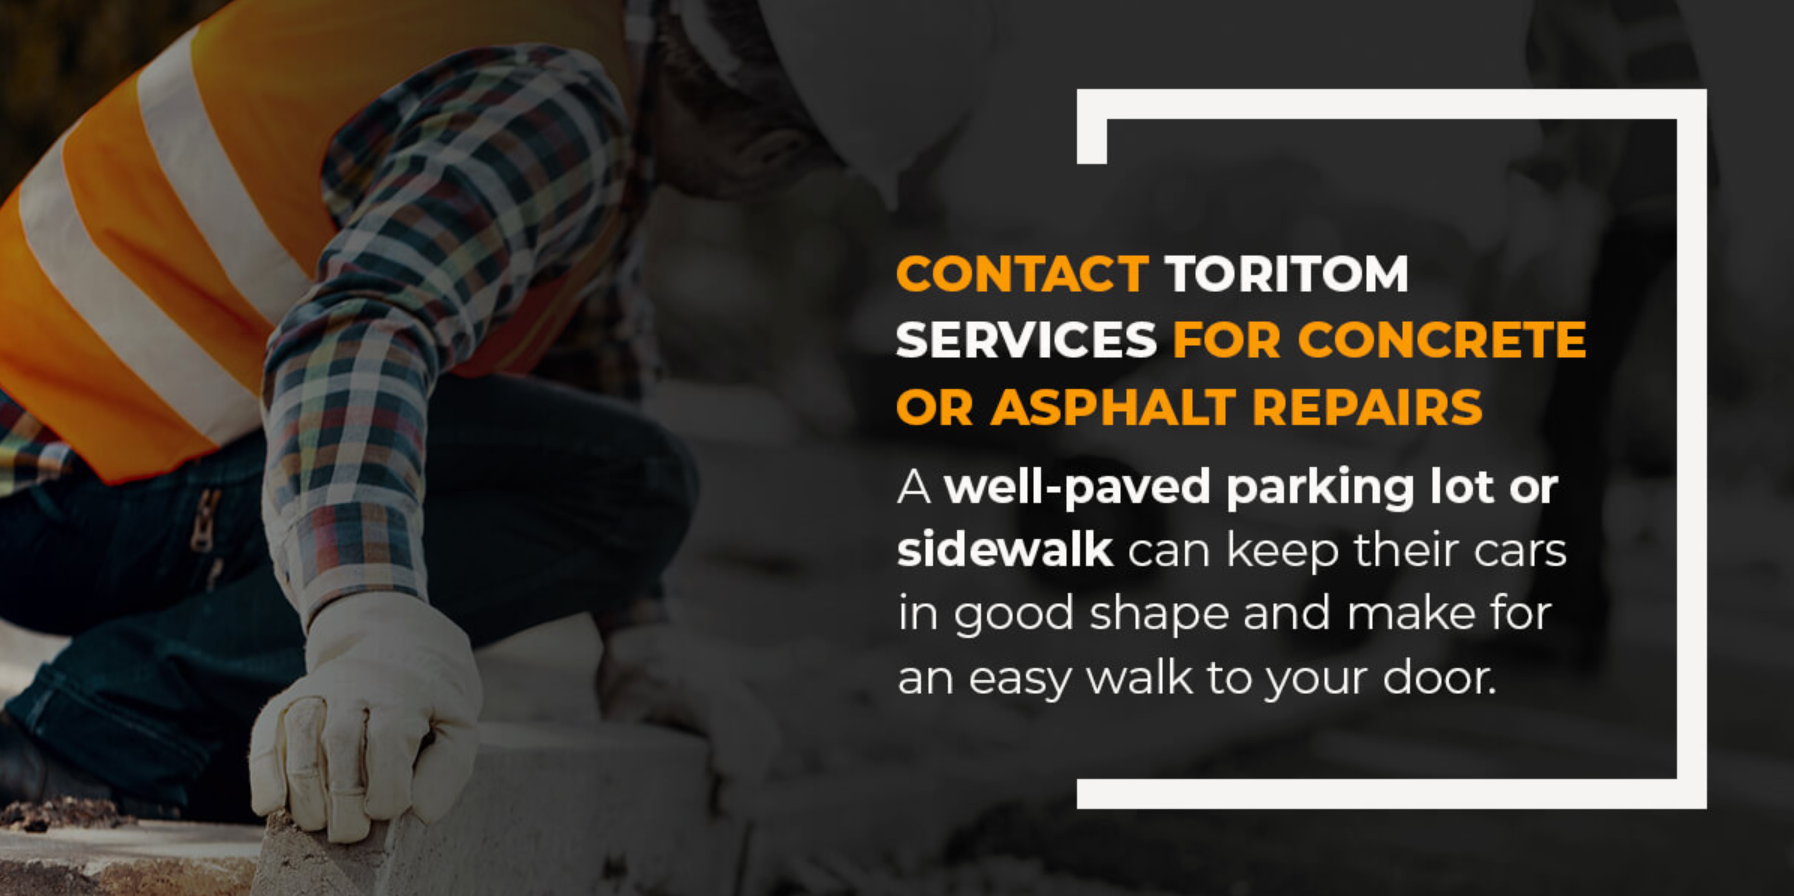 Contact Toritom for Concrete and Asphalt Projects